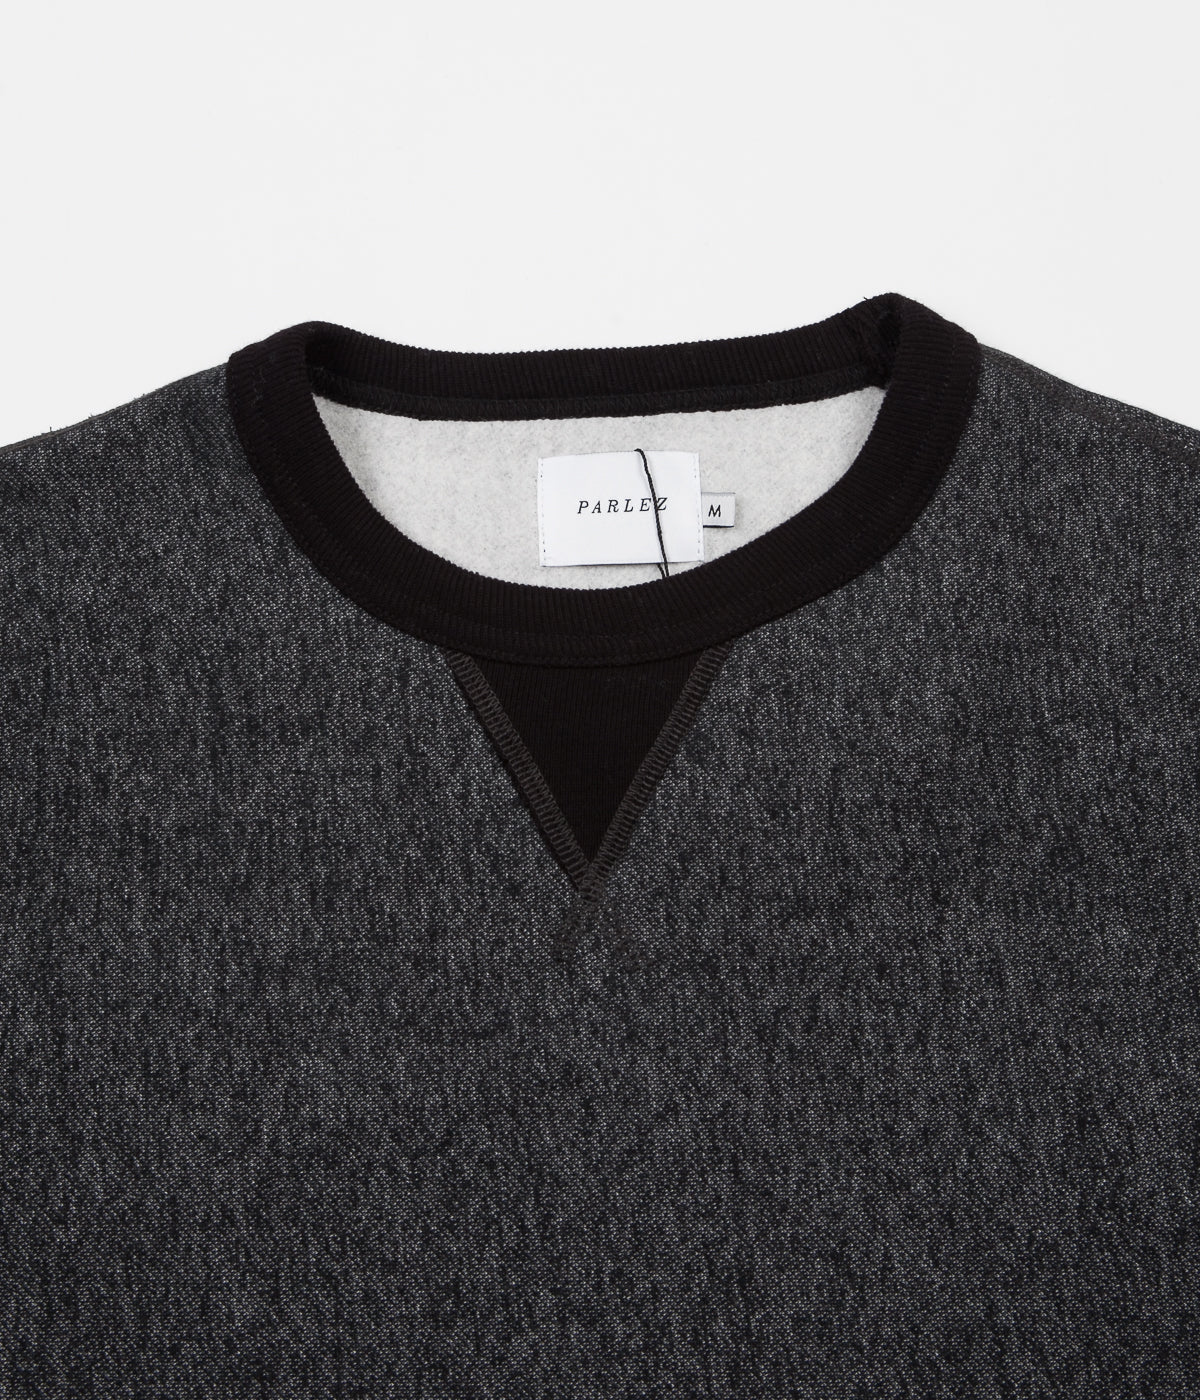 Parlez Albion 16oz Crewneck Sweatshirt - Black Mix